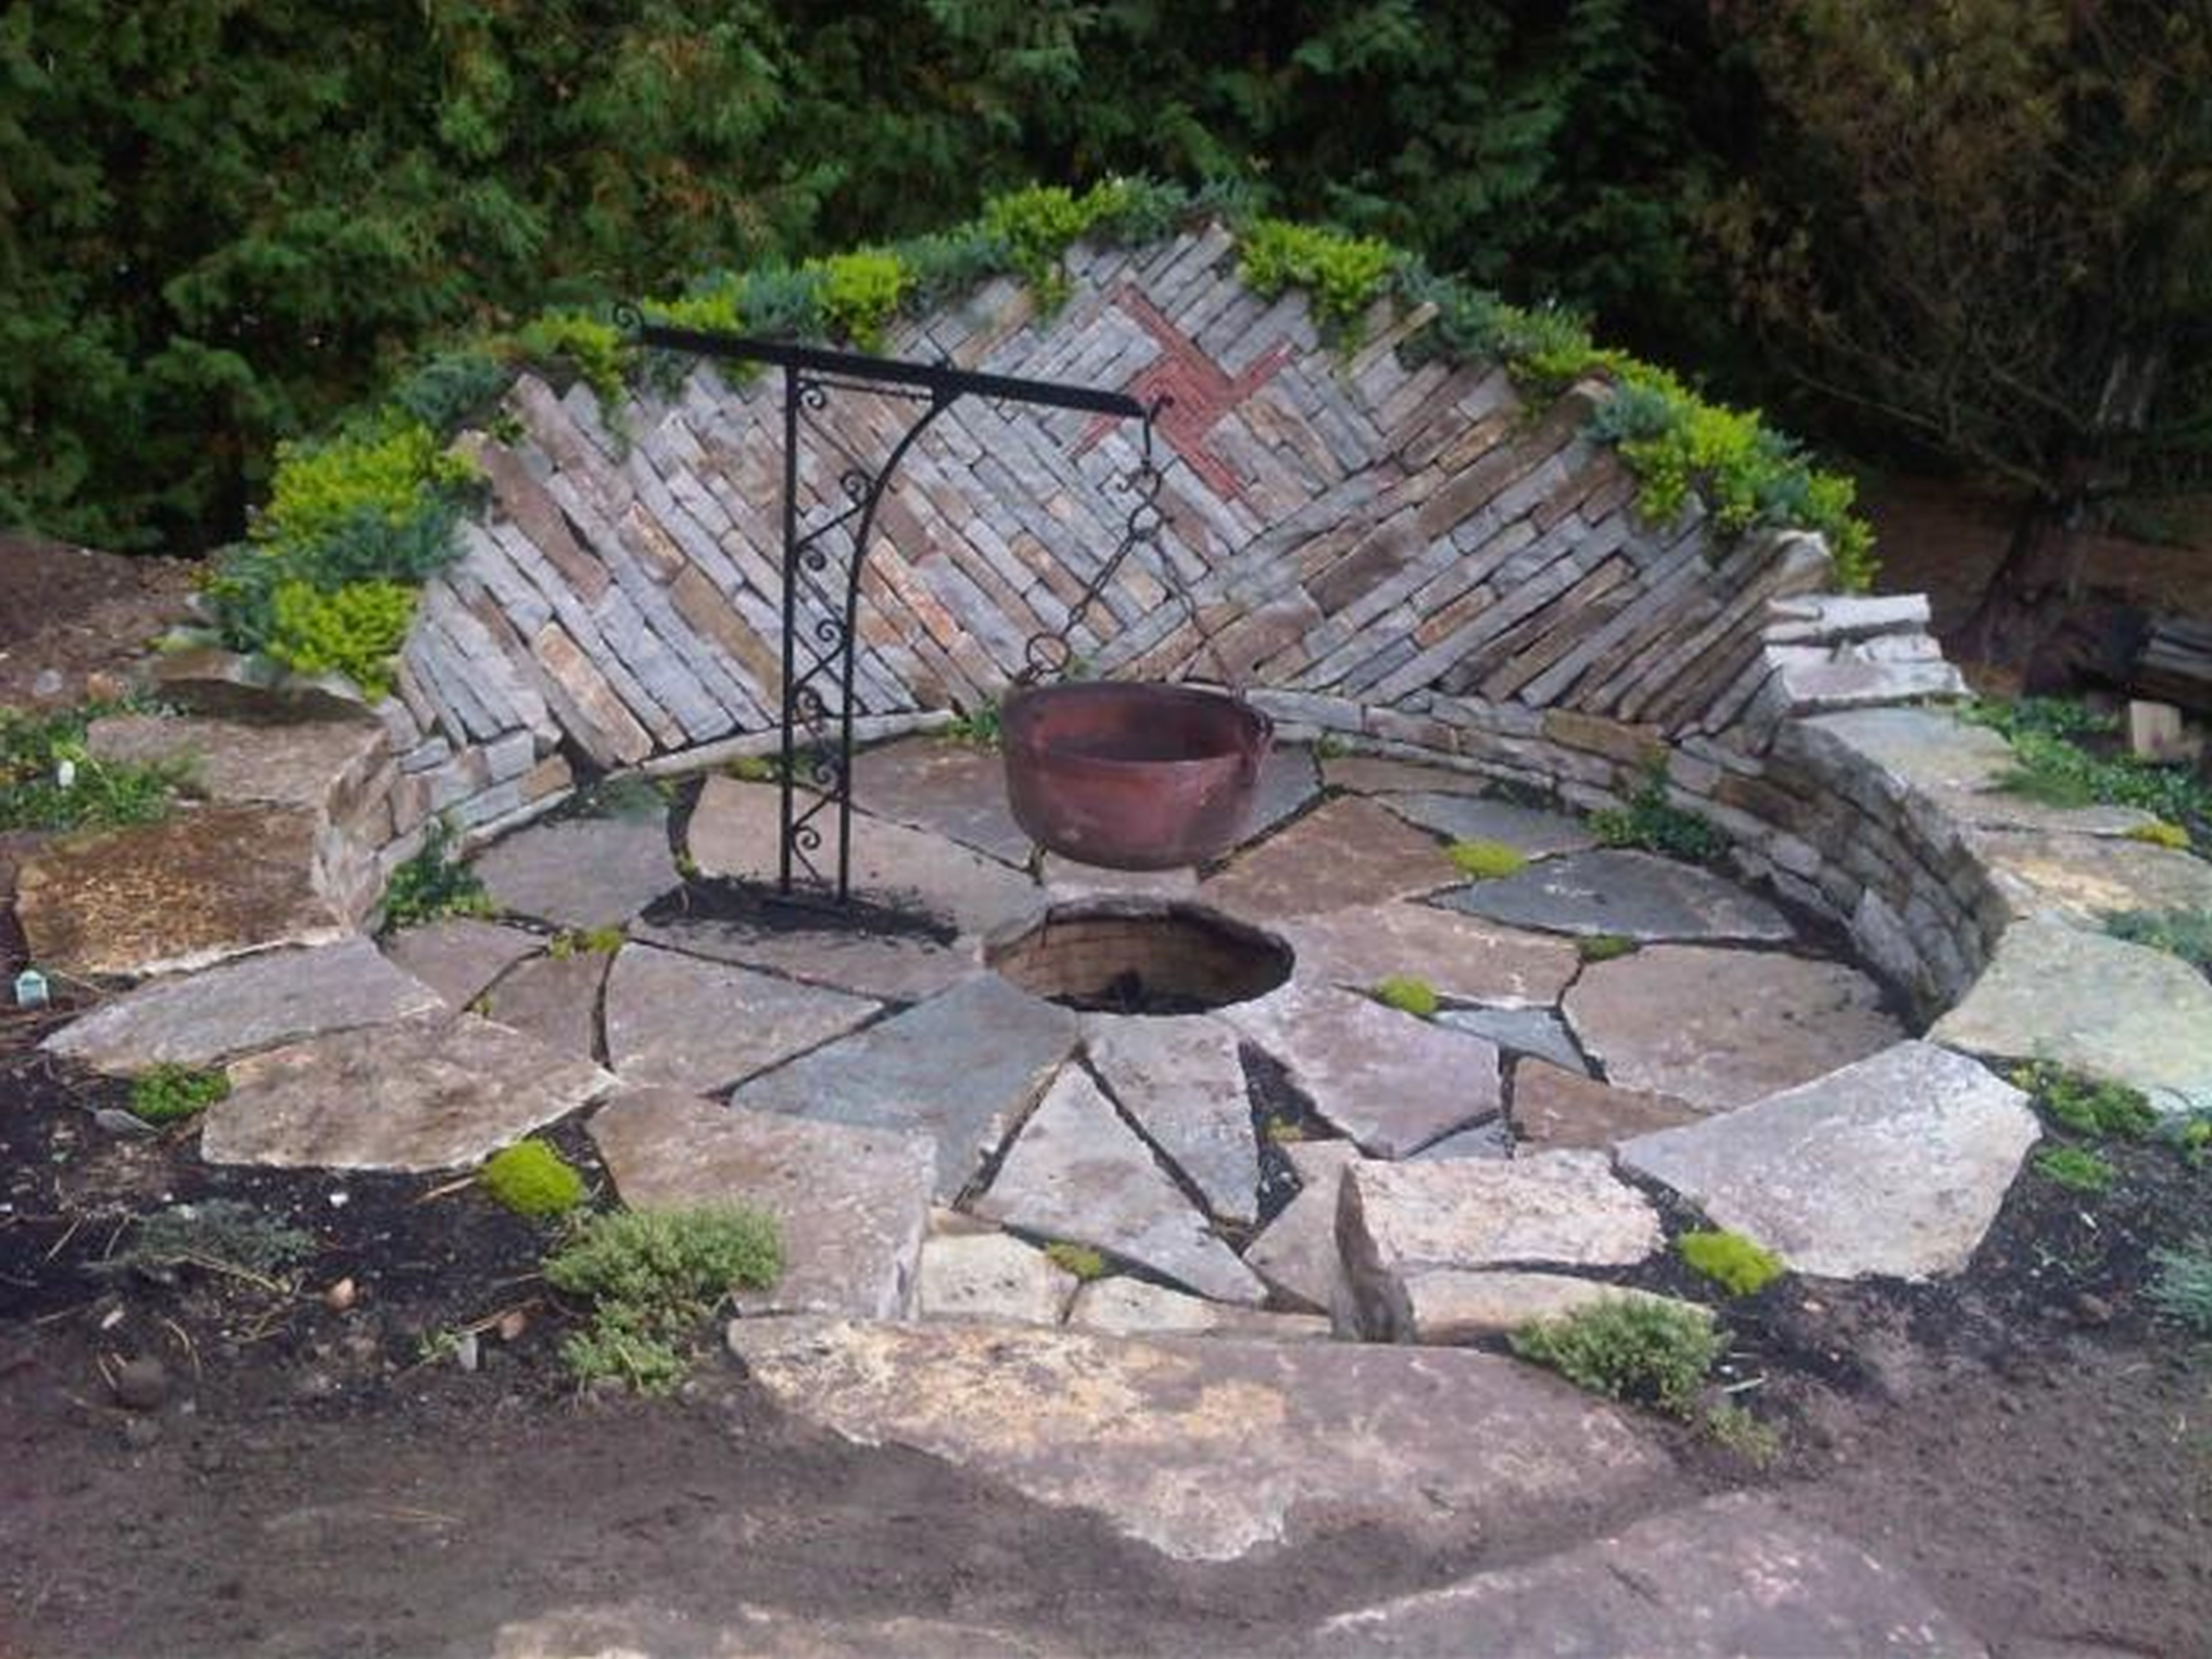 Fire Pit And Outdoor Fireplace Ideas Diy Network Made Inspirations Inside Inexpensive Outdoor Fireplace Popular Today Inexpensive Outdoor Fireplace